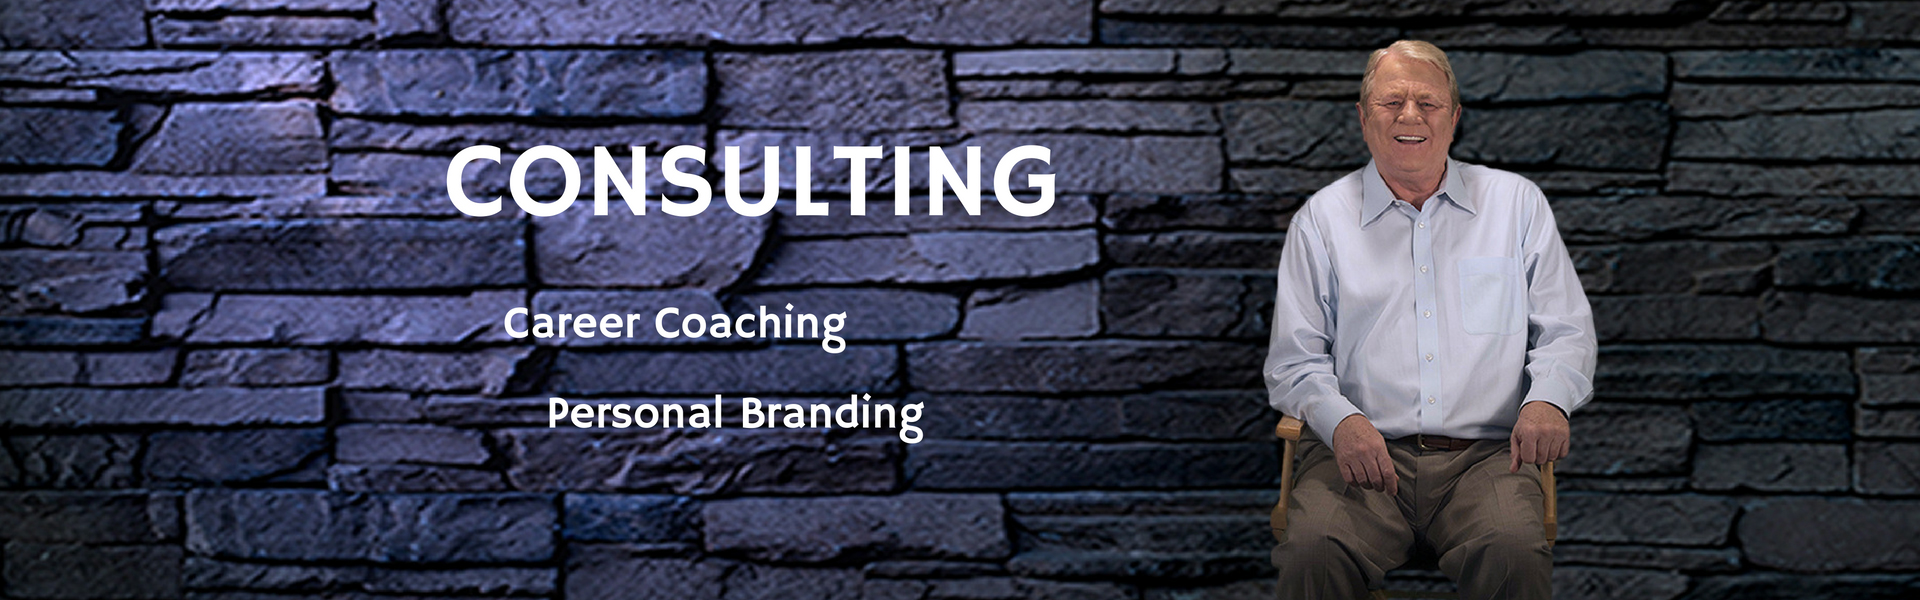 CONSULTING-(2)